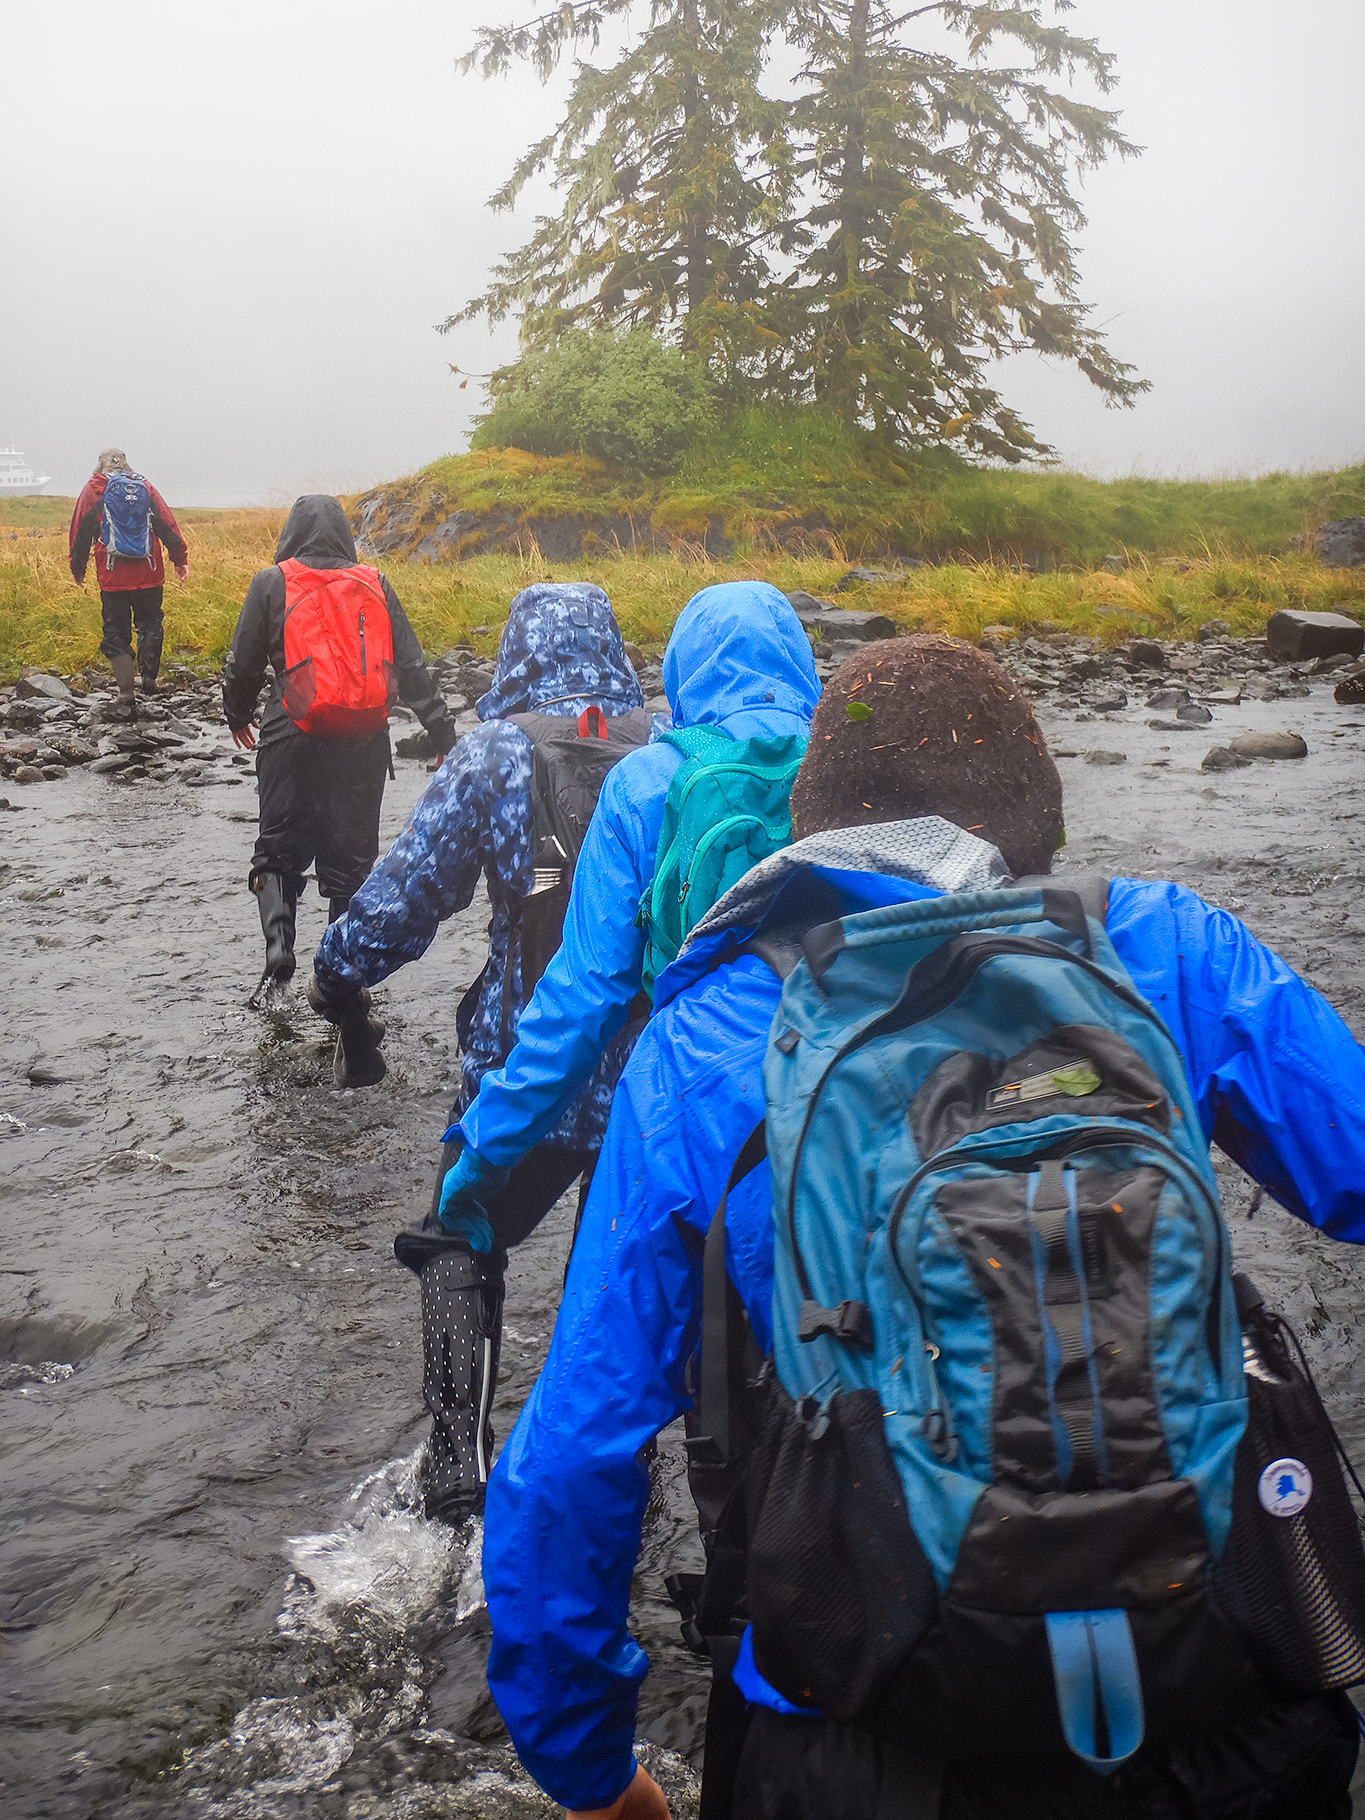 Our guide Krista leads the way on a shore walk through a small stream with spawning salmnon.